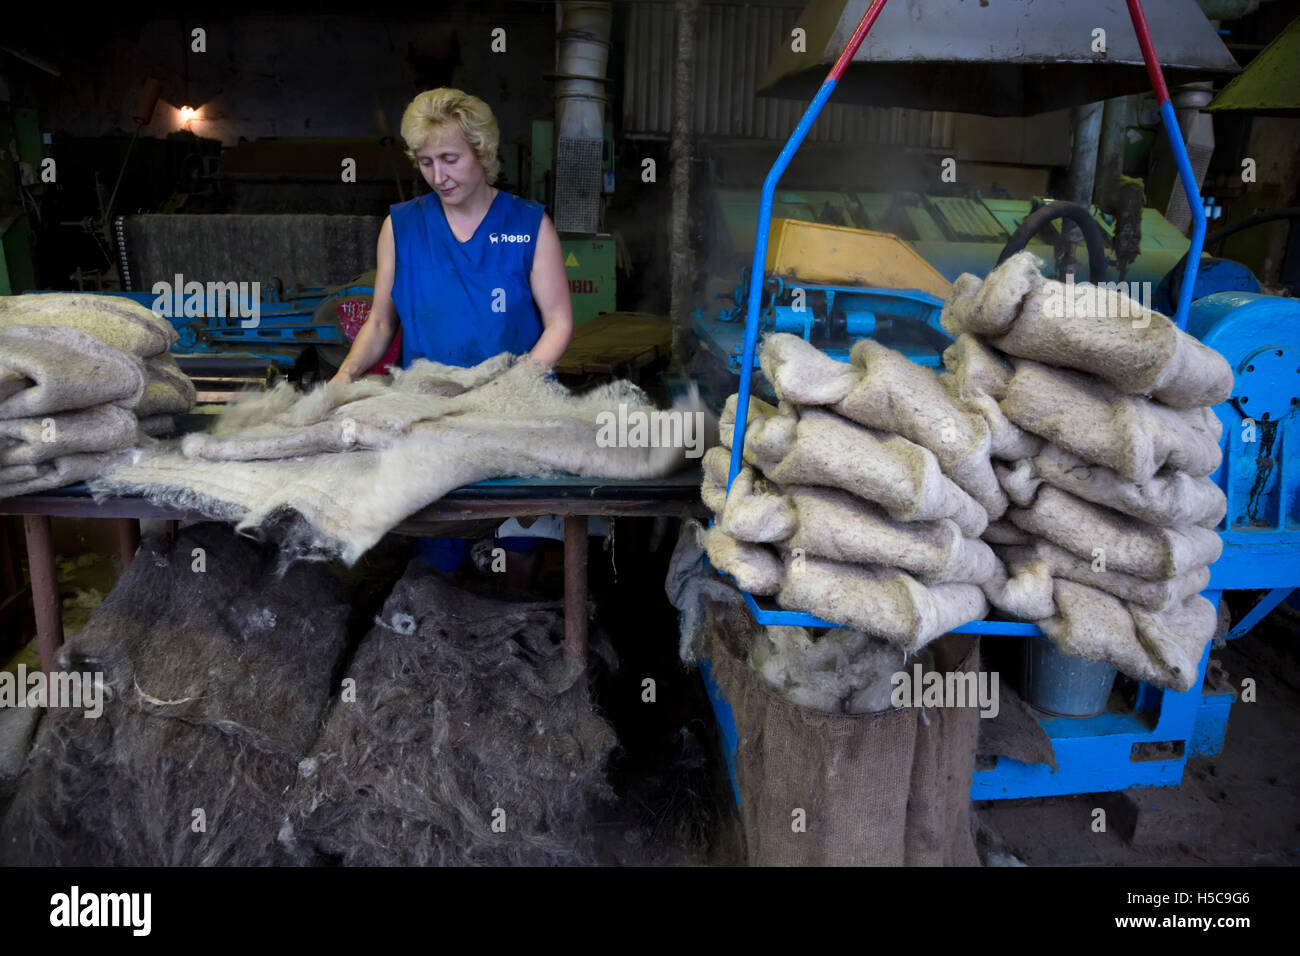 A woman works at a felt-pressing machine in Yaroslavl milled footwear factory, Russia - Stock Image